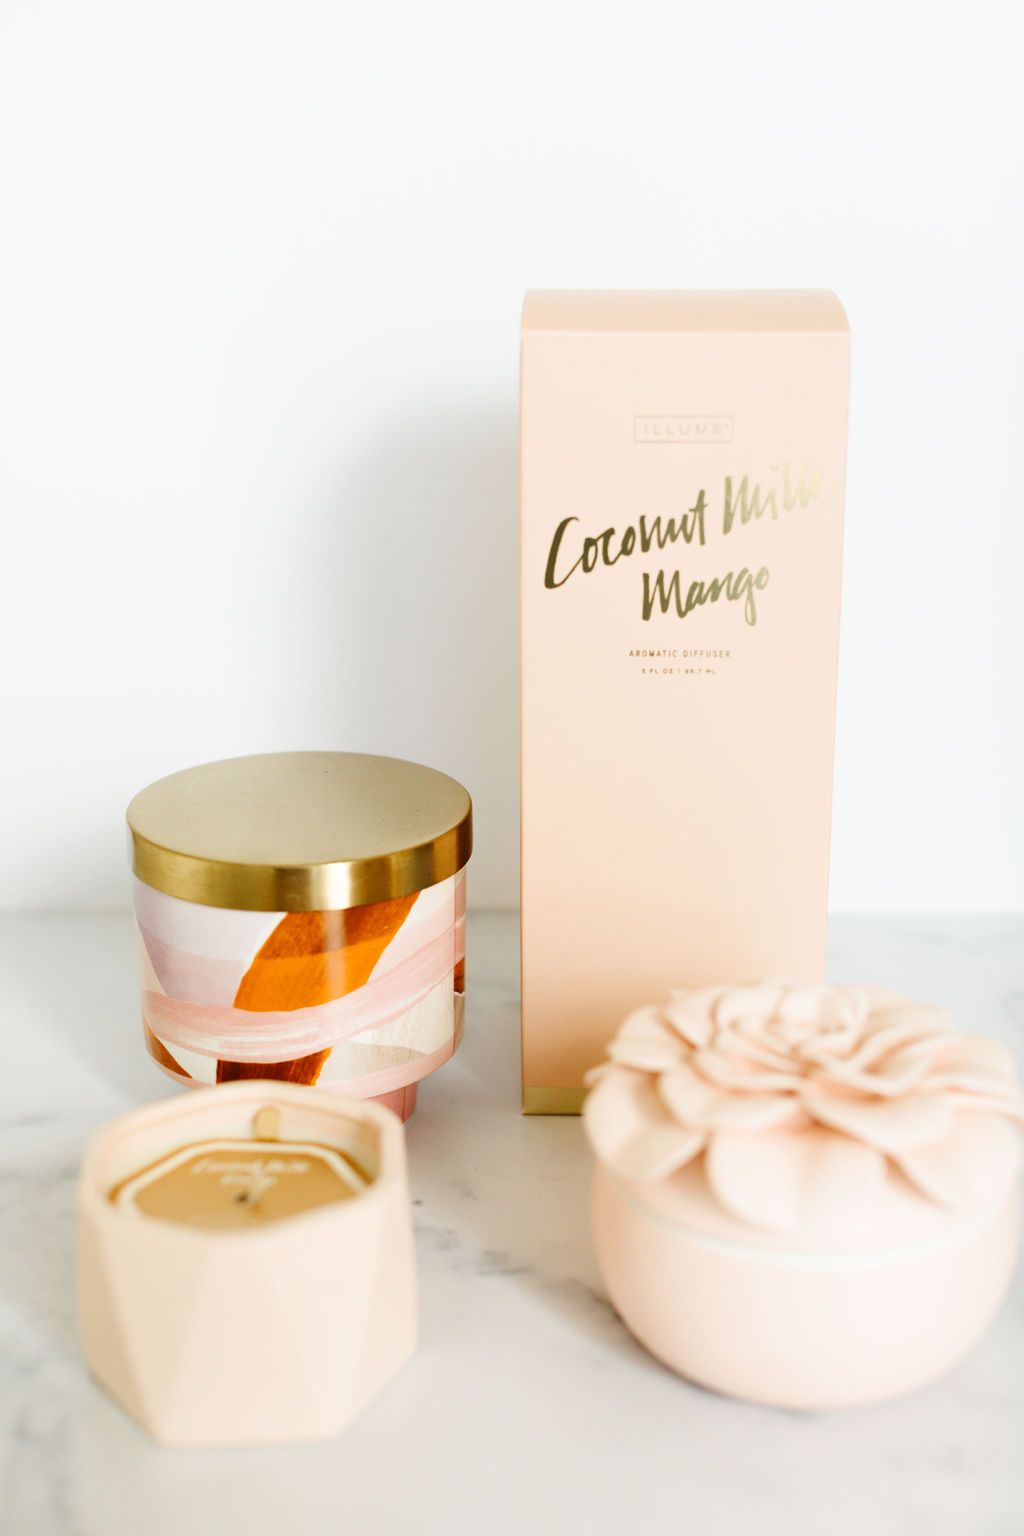 Coconut Milk Mango Med Mojave Candle 13oz